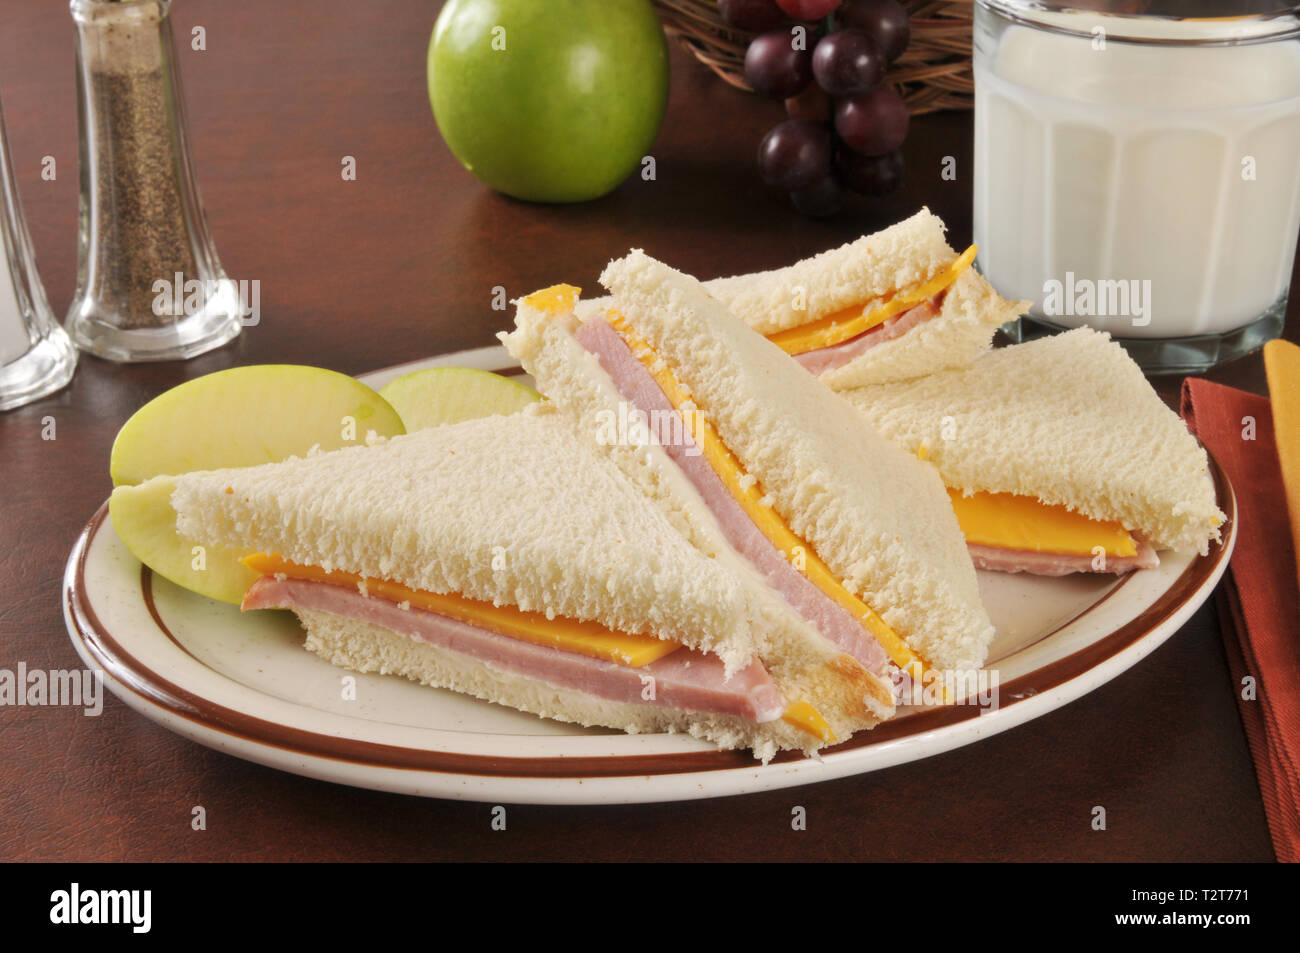 A bologna and cheese sandwich with a green apple and milk - Stock Image